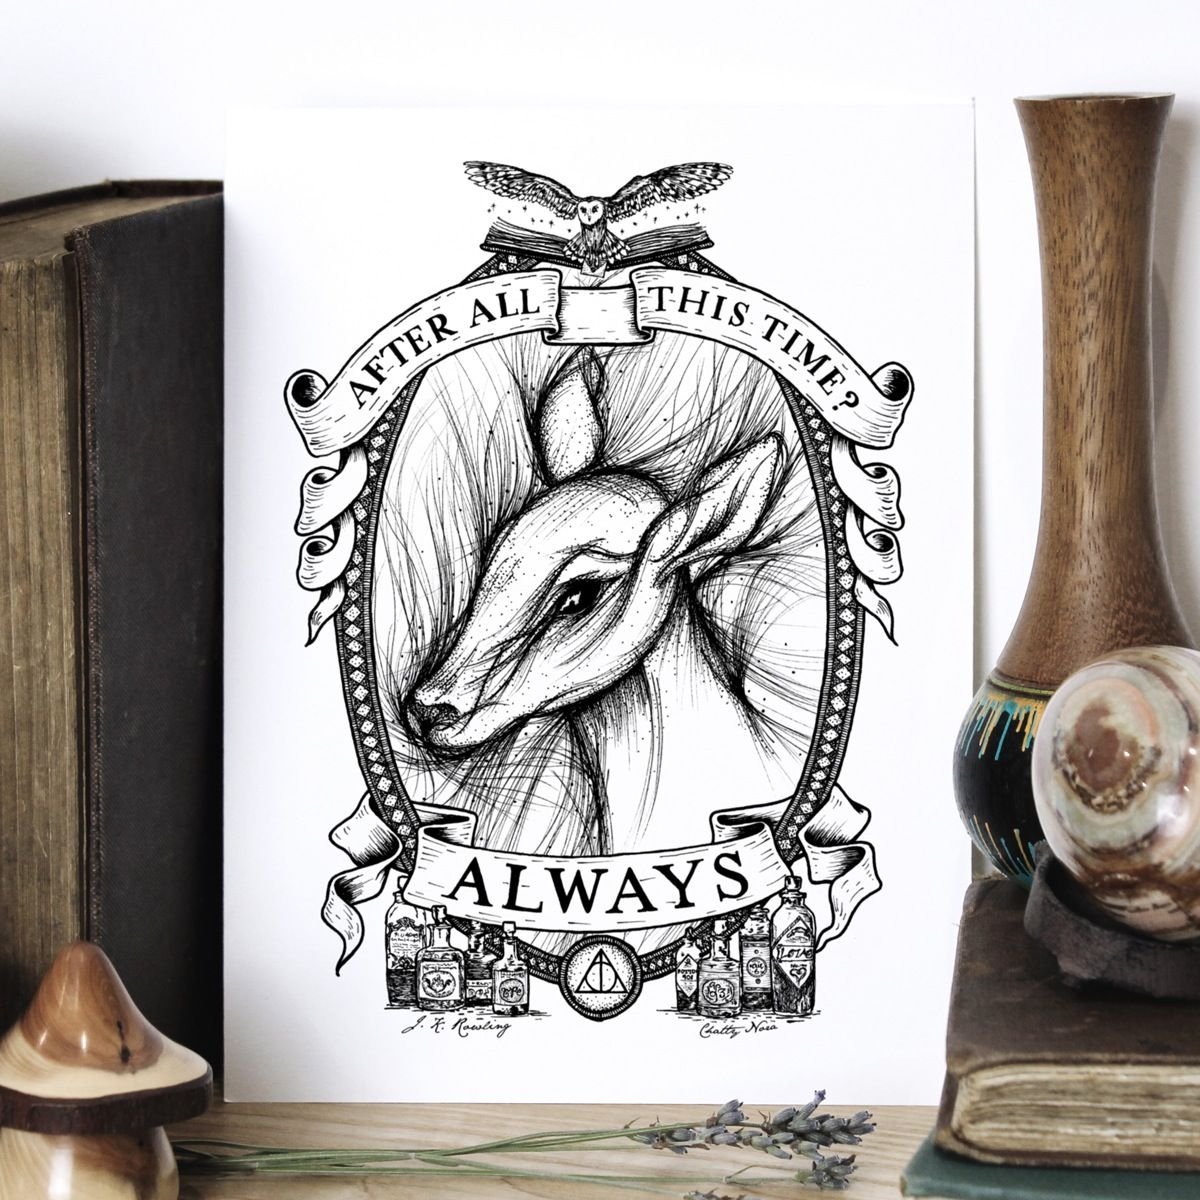 This Harry Potter Themed Print Has Been Done From An